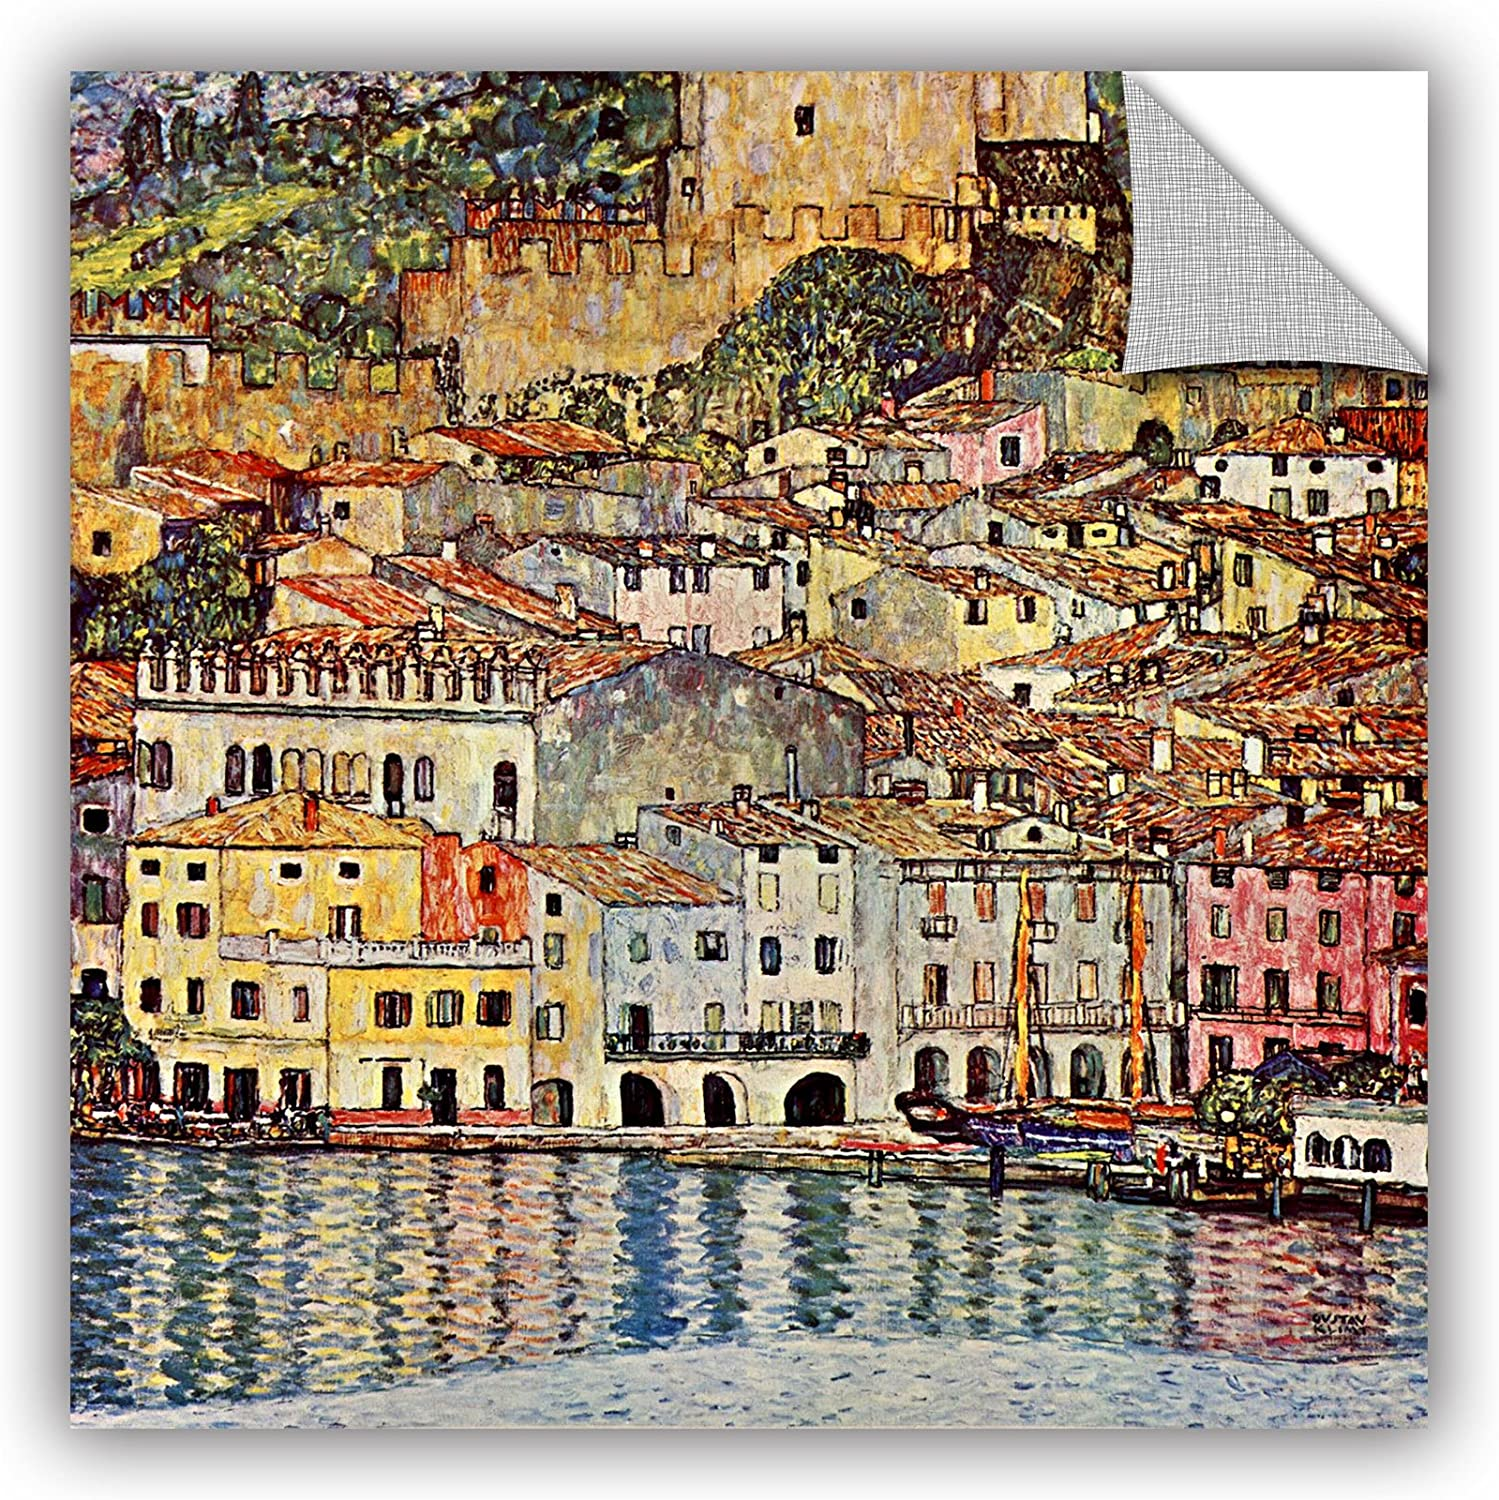 Art Wall 0kli038a1818p Gustav Klimt's Malcesina at Gardasee Appeelz Removable Graphic Wall Art, 18x18Inch